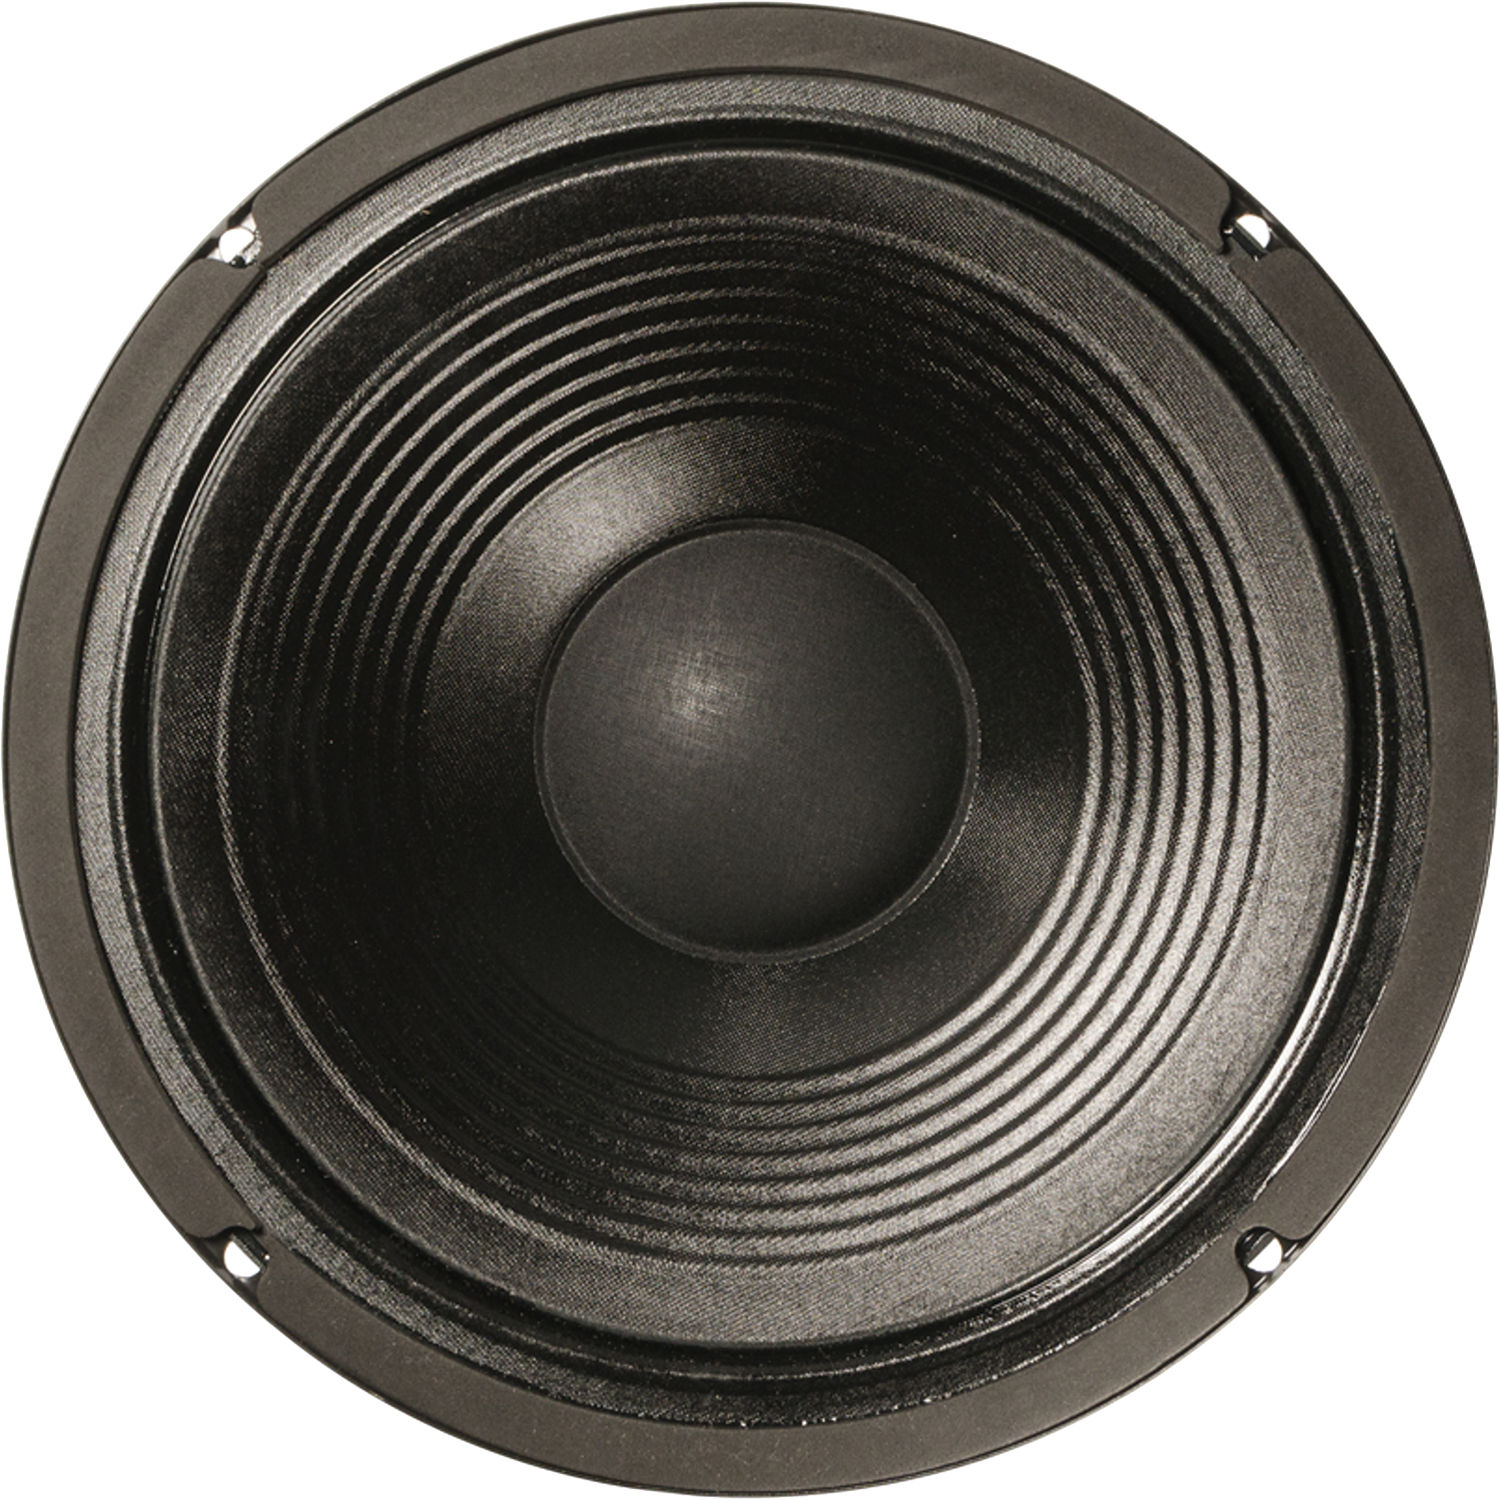 "Electro-Harmonix 10VR10 10"" 10W Guitar Amp Replacement Speaker (10 Ohms)"